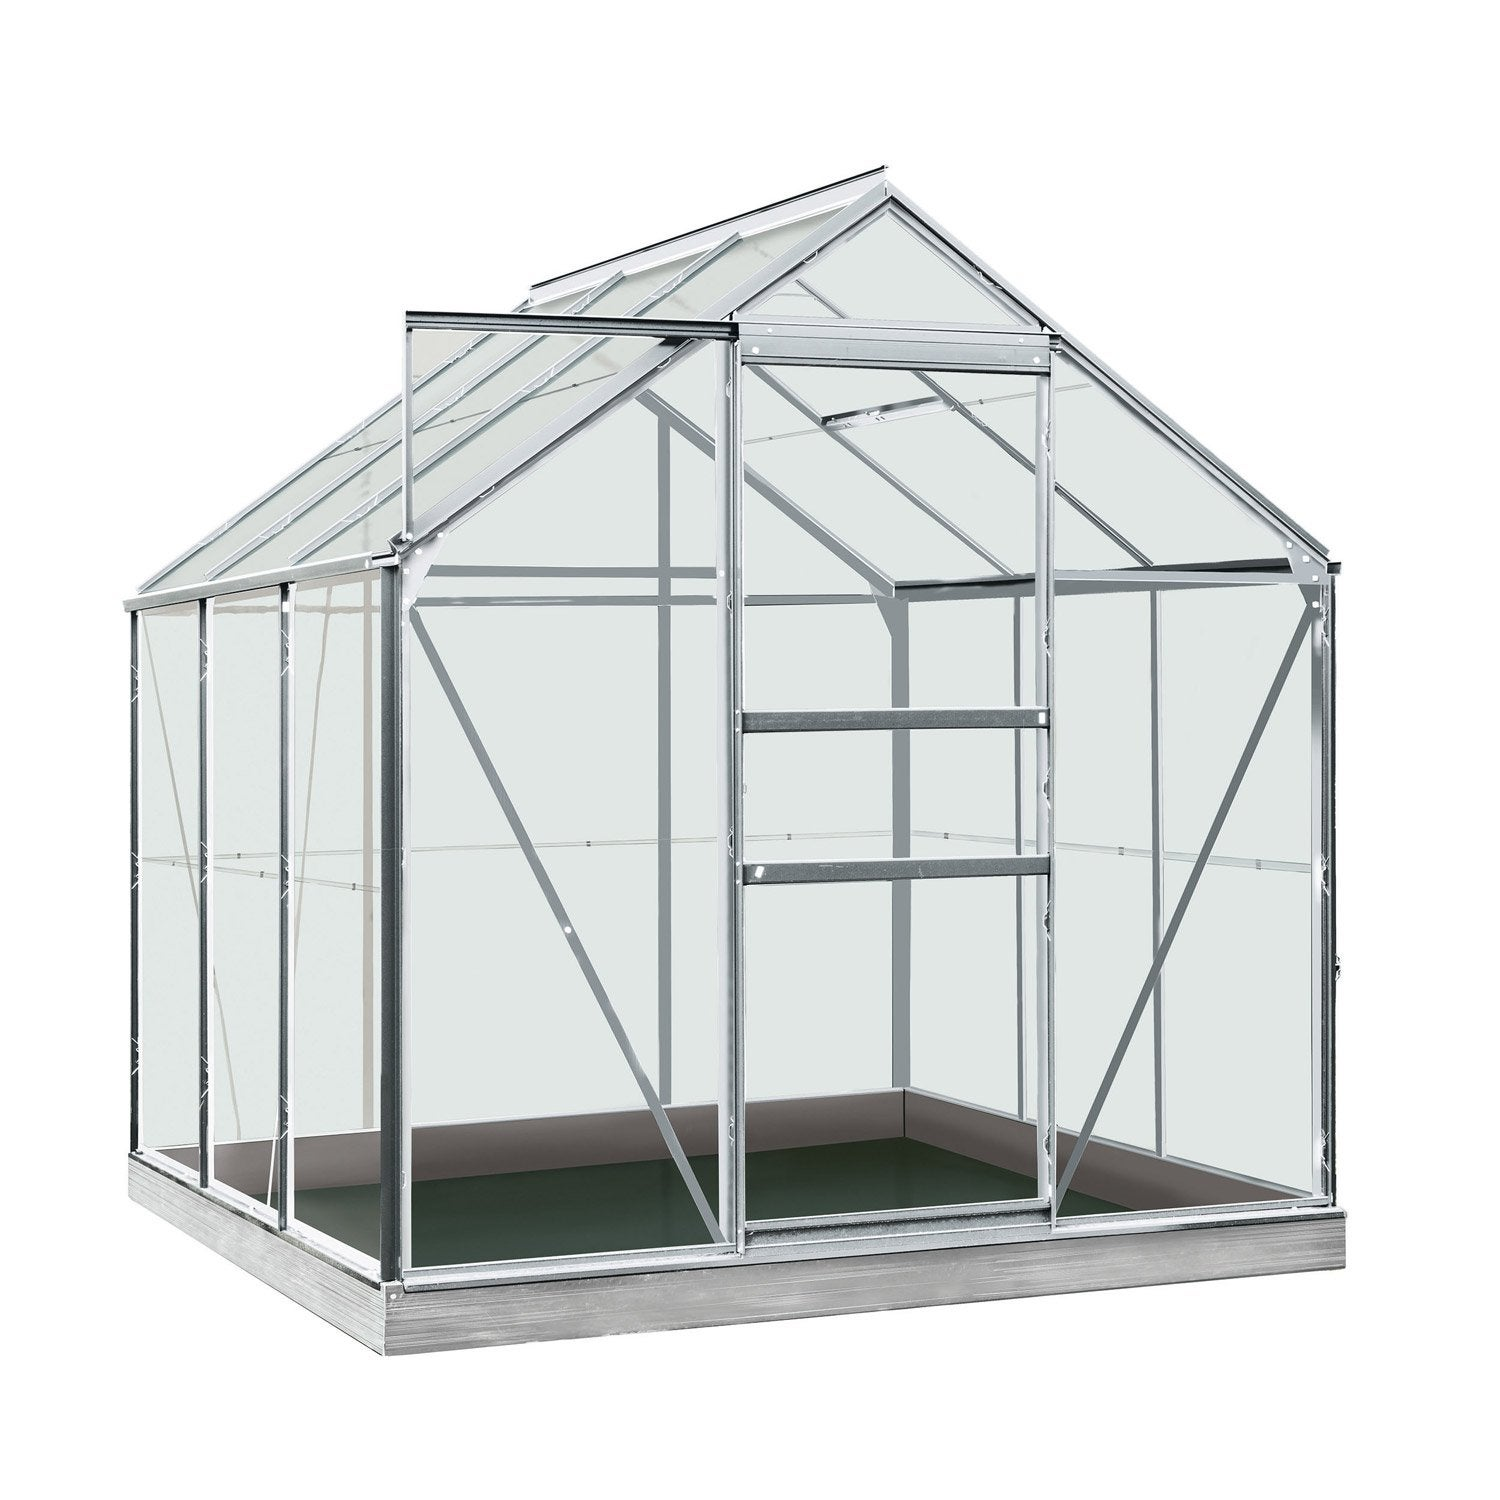 Serre de jardin en polycarbonate simple paroi rainbow 3 for Serre per orto leroy merlin